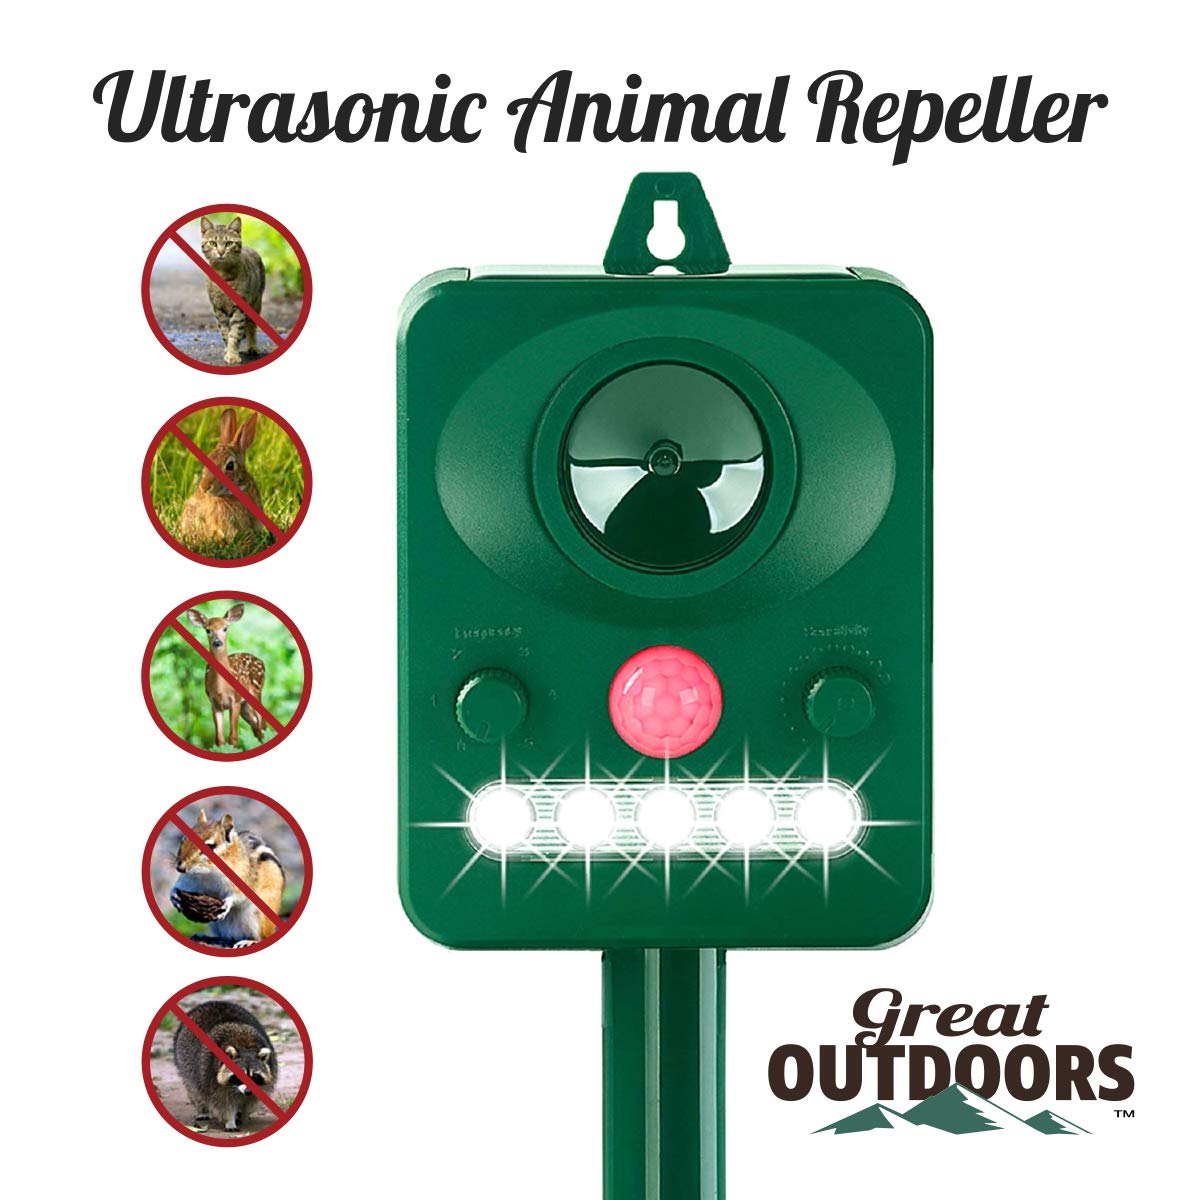 Great Outdoors Ultrasonic Animal Repeller - Eco-Friendly and Waterproof Solar Repellent with Sound Control - Sonic Deterrent for Bird Deer Cat Dog Squirrel Raccoon Rabbit Fox - Garden Protection by GREAT OUTDOORS TM